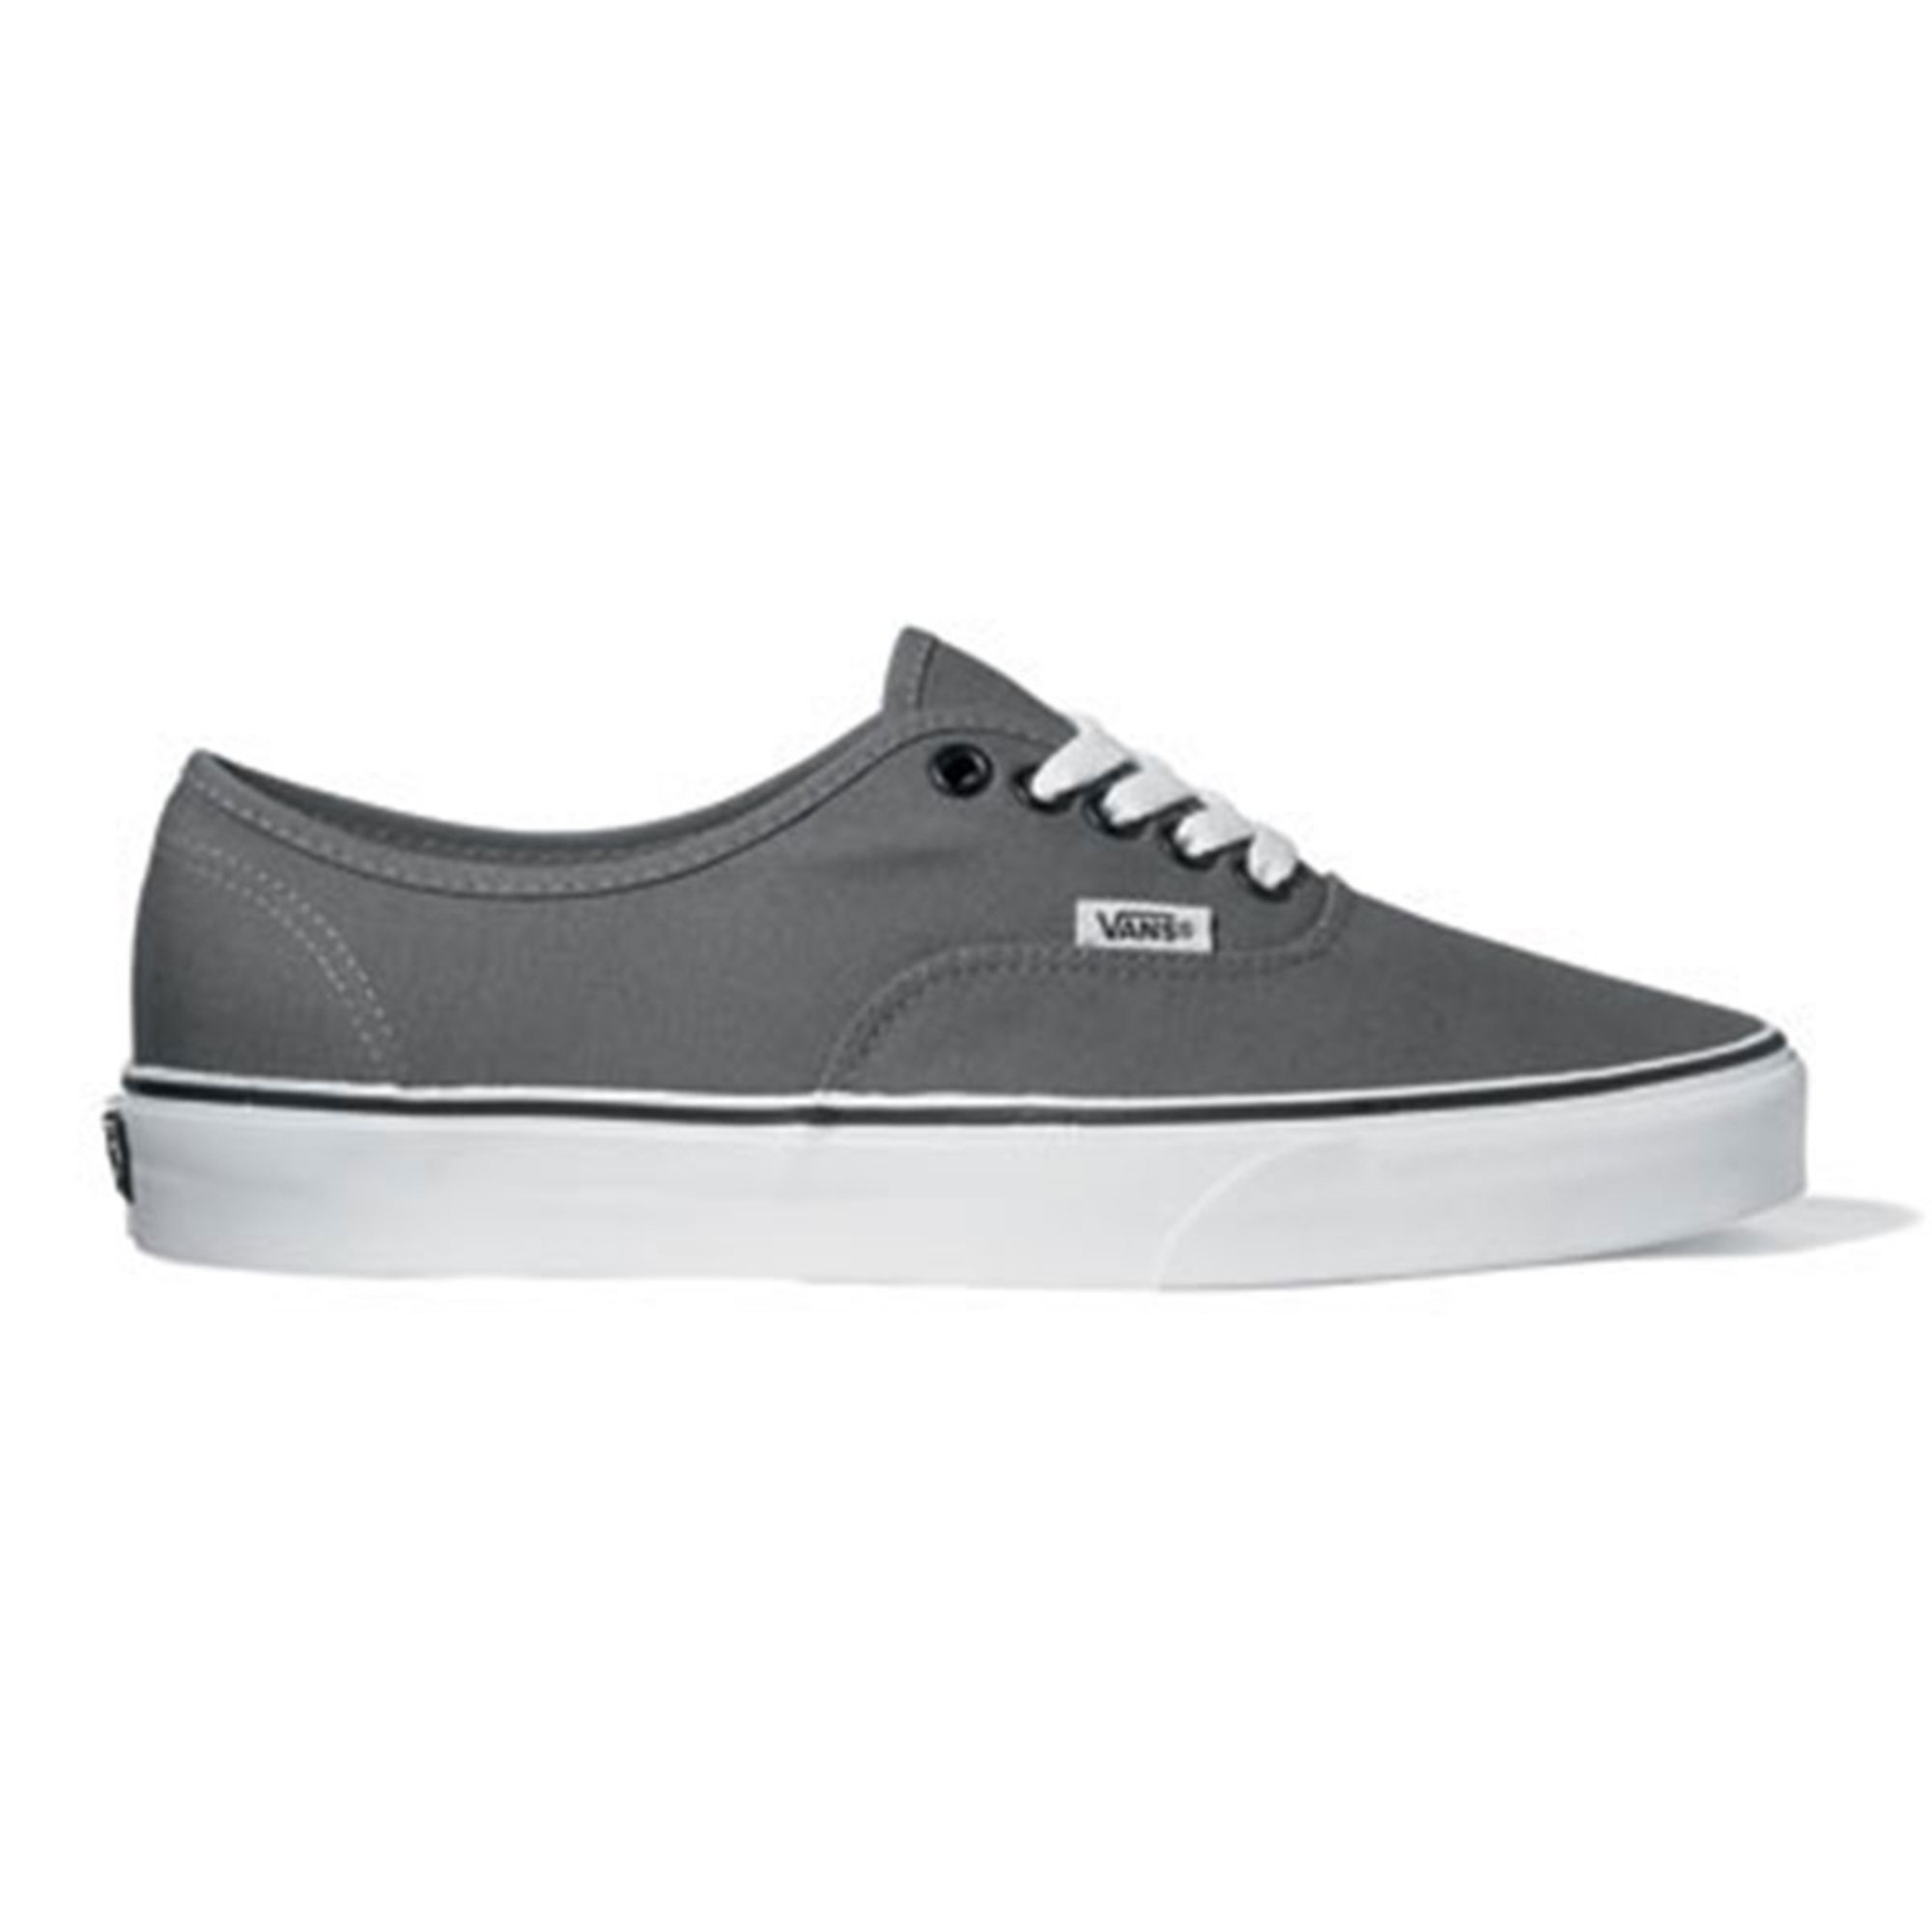 1690a51904467d Vans Men s Authentic Skate Shoe